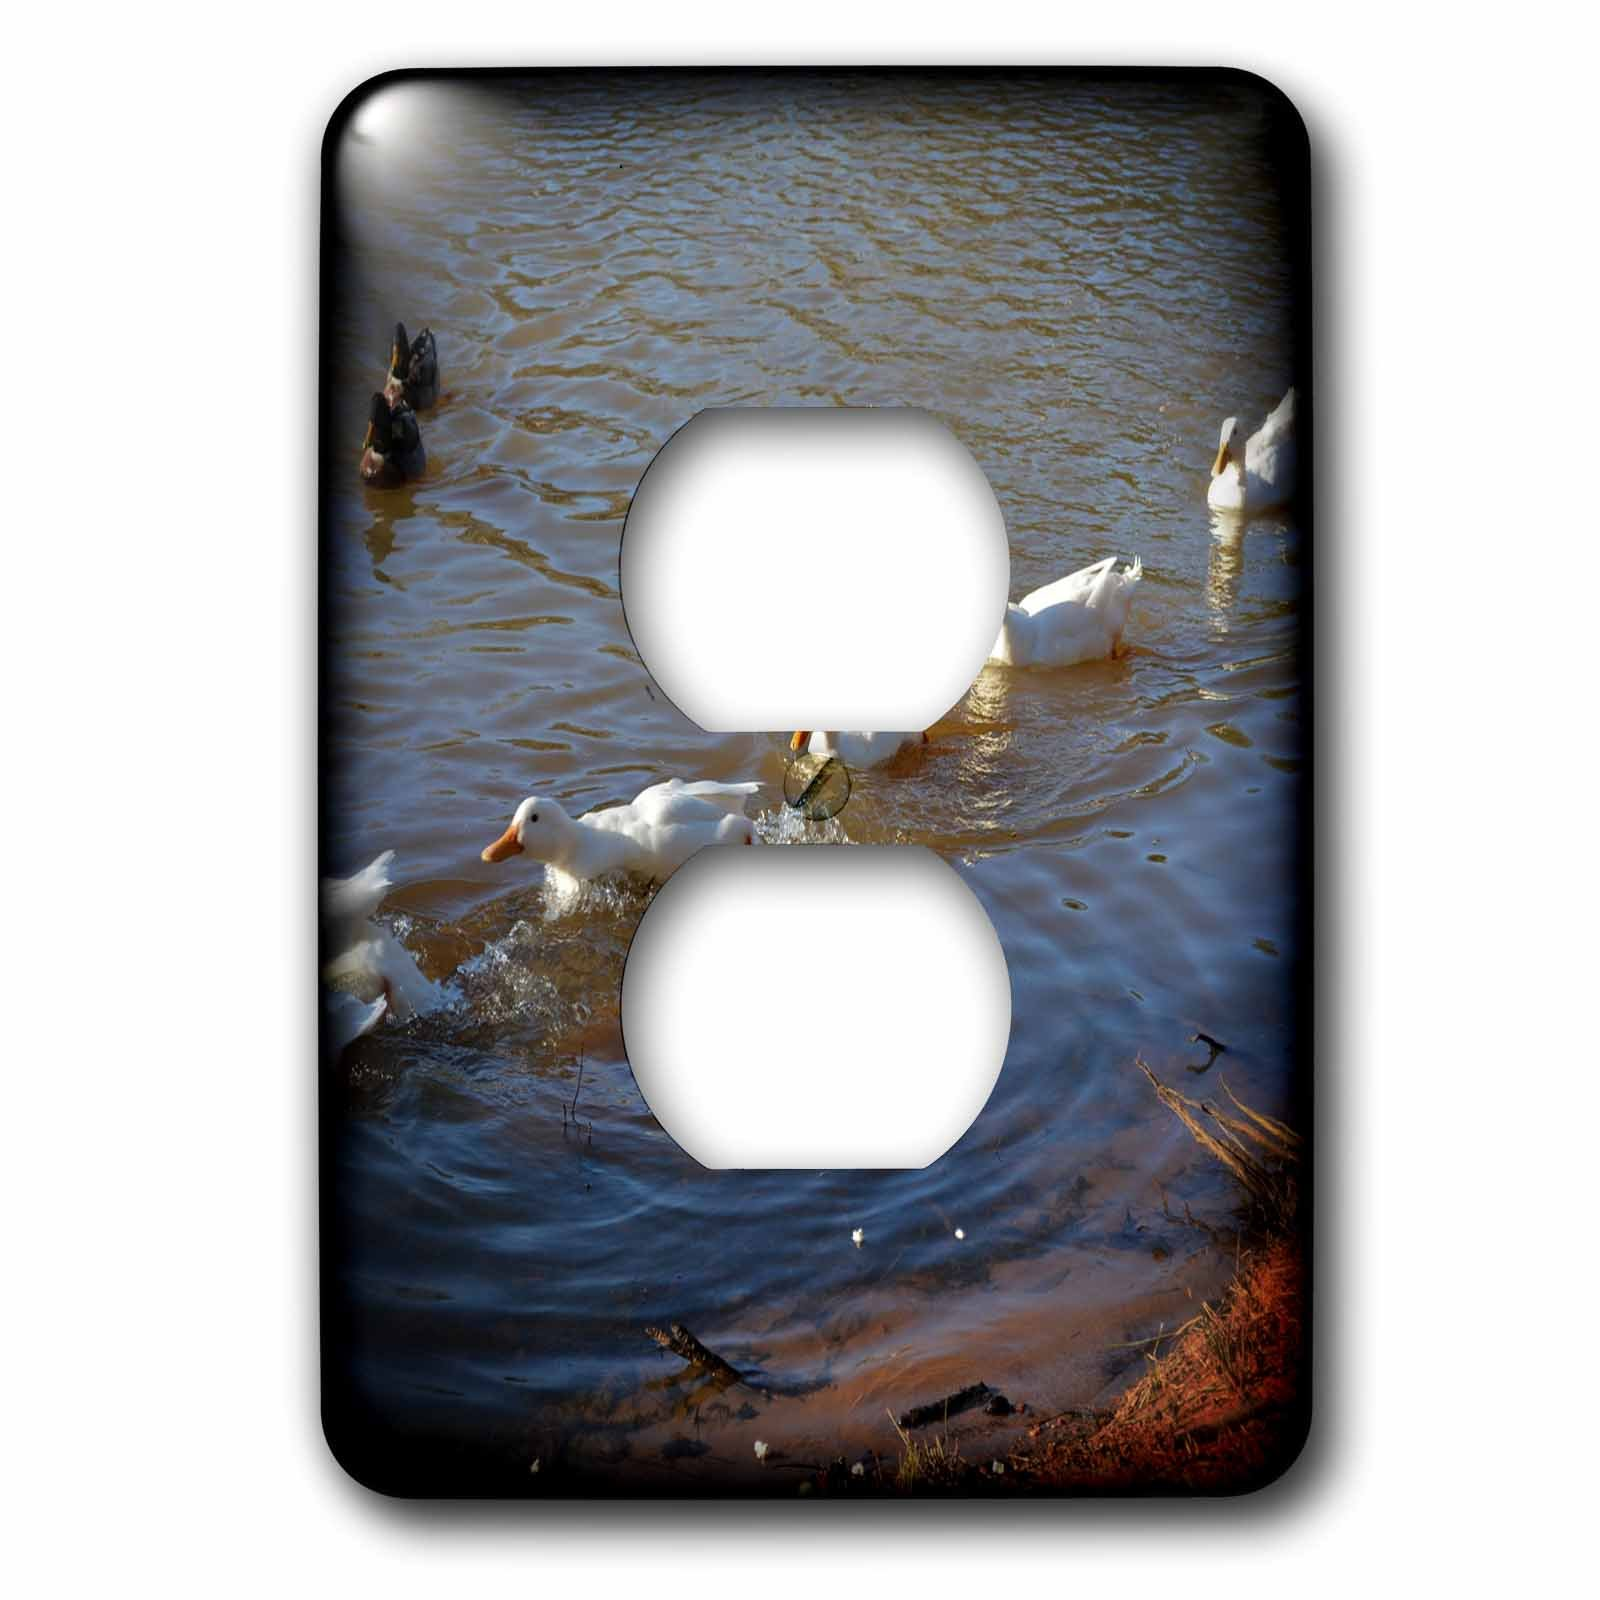 3dRose WhiteOaks Photography and Artwork - Ducks - All Ducks in a Row is a photo of a bunch of ducks swimming together - Light Switch Covers - 2 plug outlet cover (lsp_265327_6)